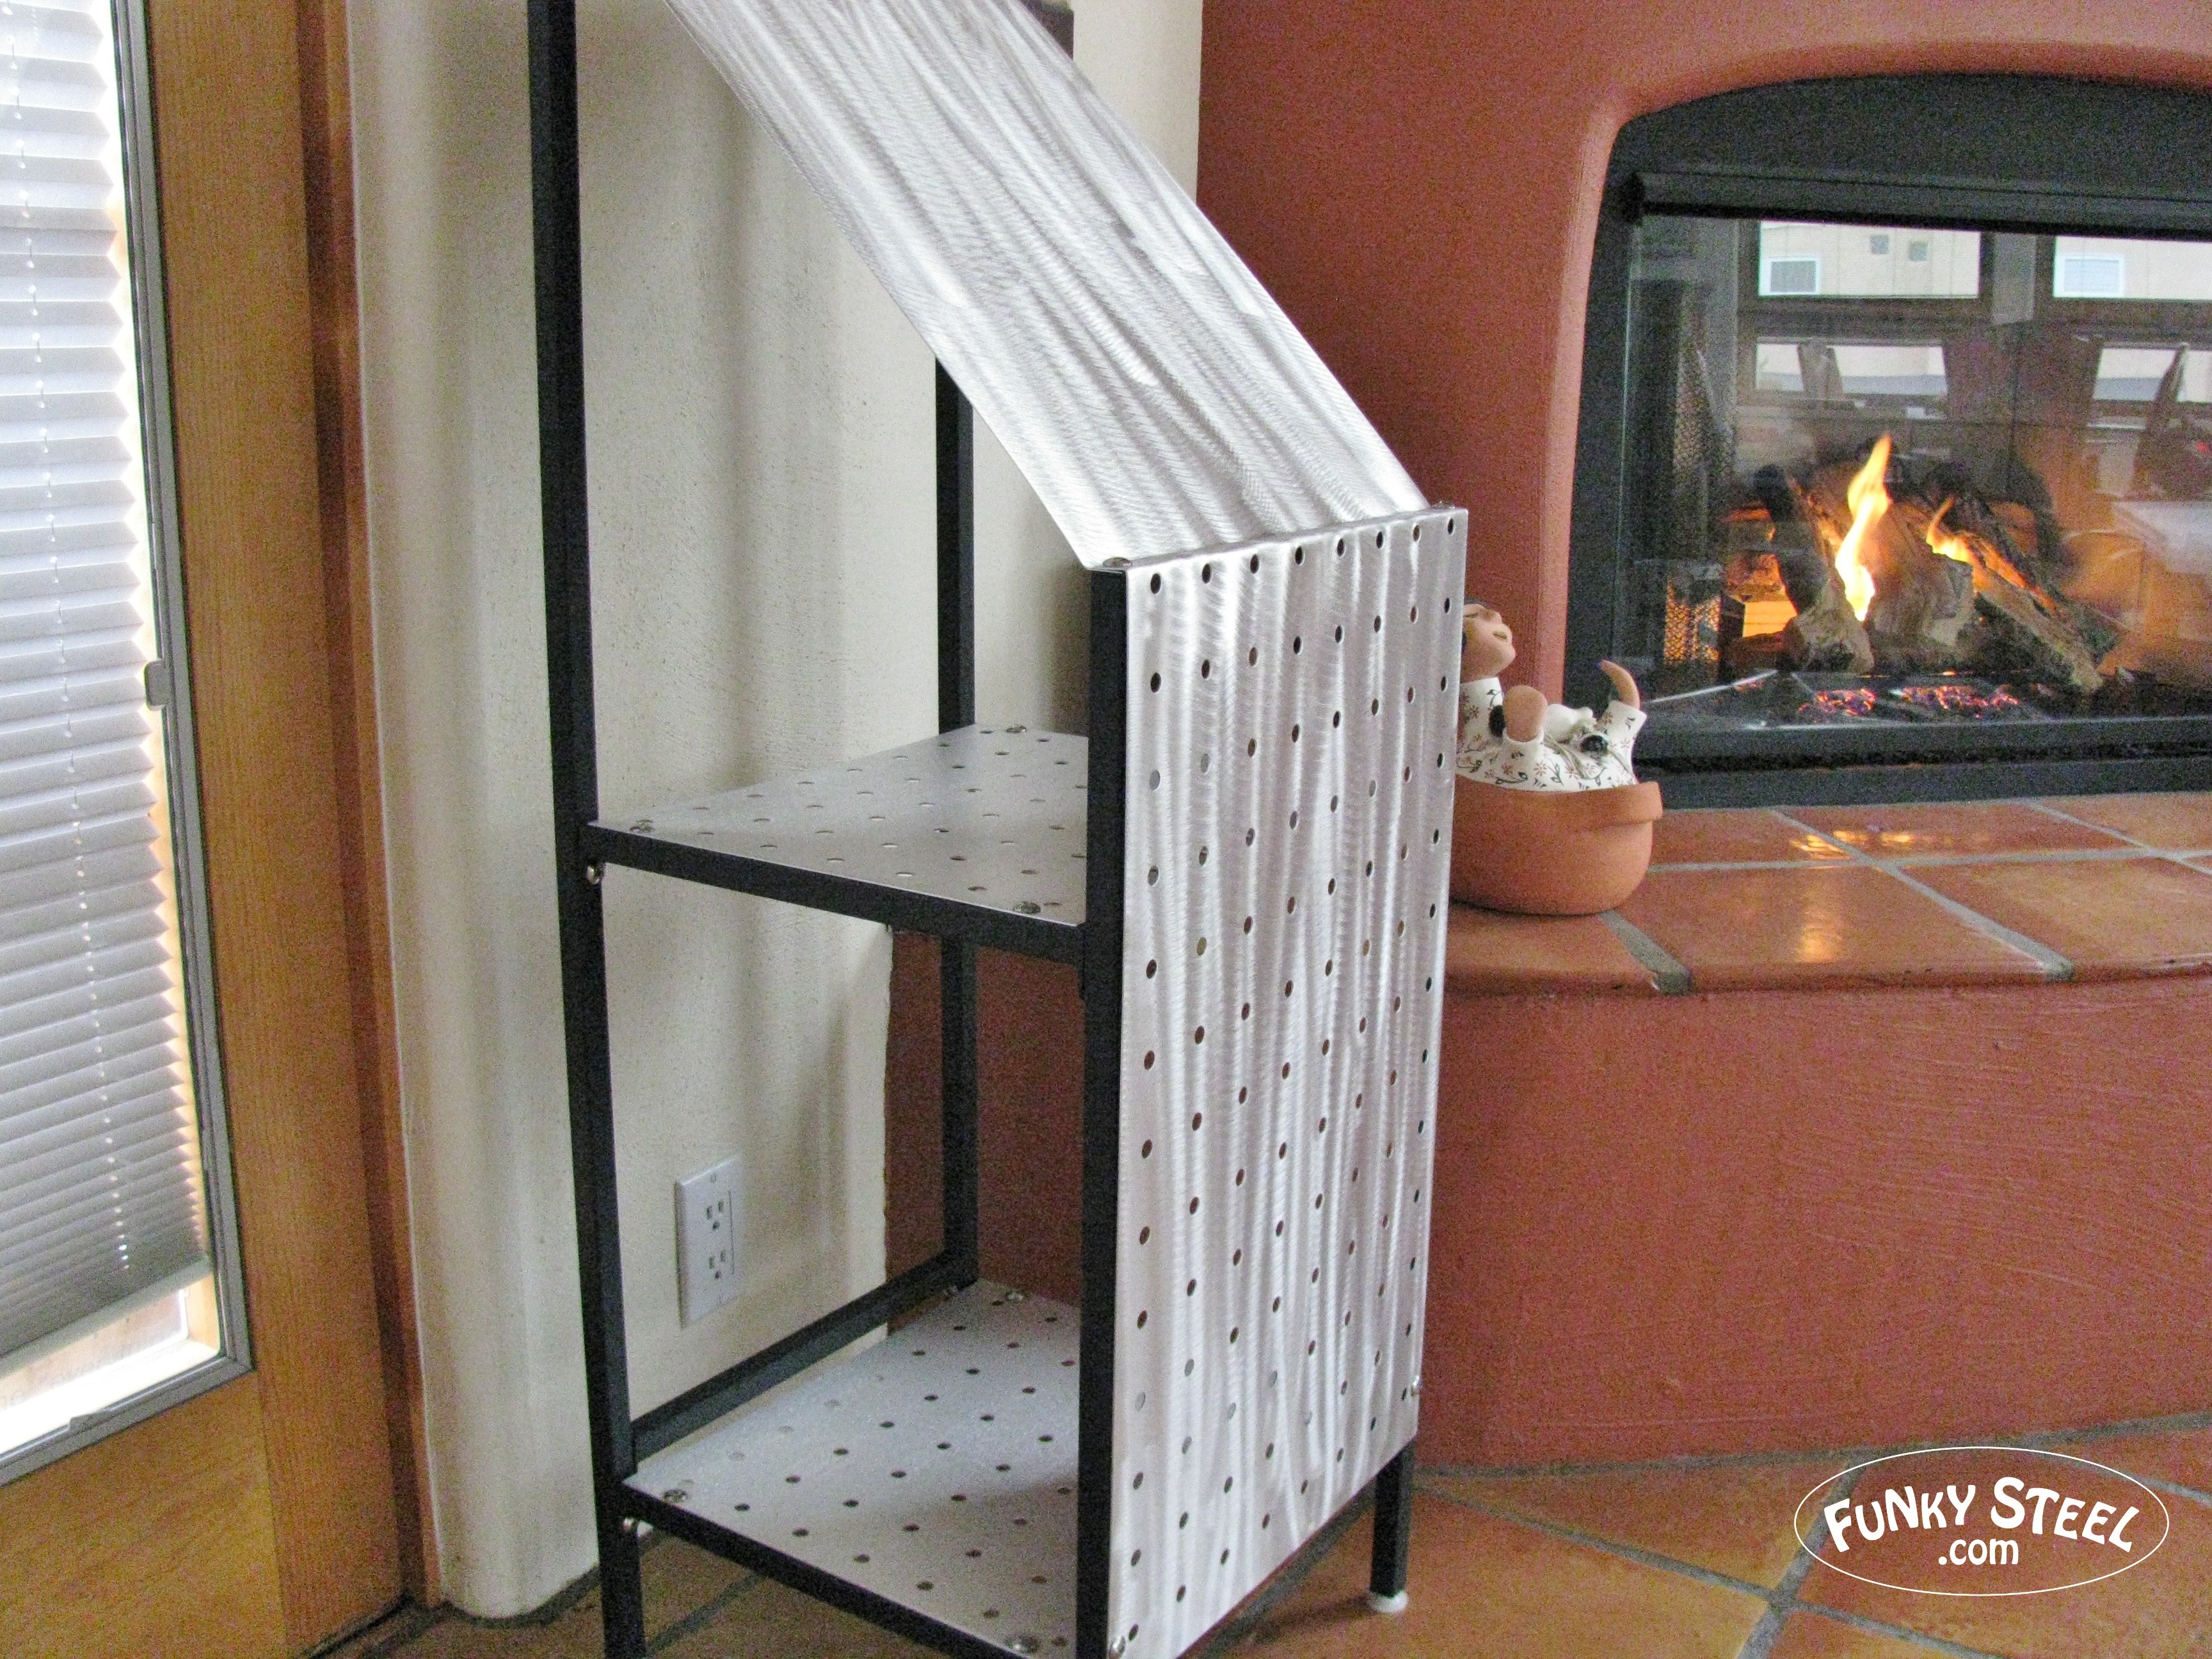 fireplaces tips linear grills under and interior round for fireplace floor mirror outdoor stove wood design rack napoleon electric ideas captivating